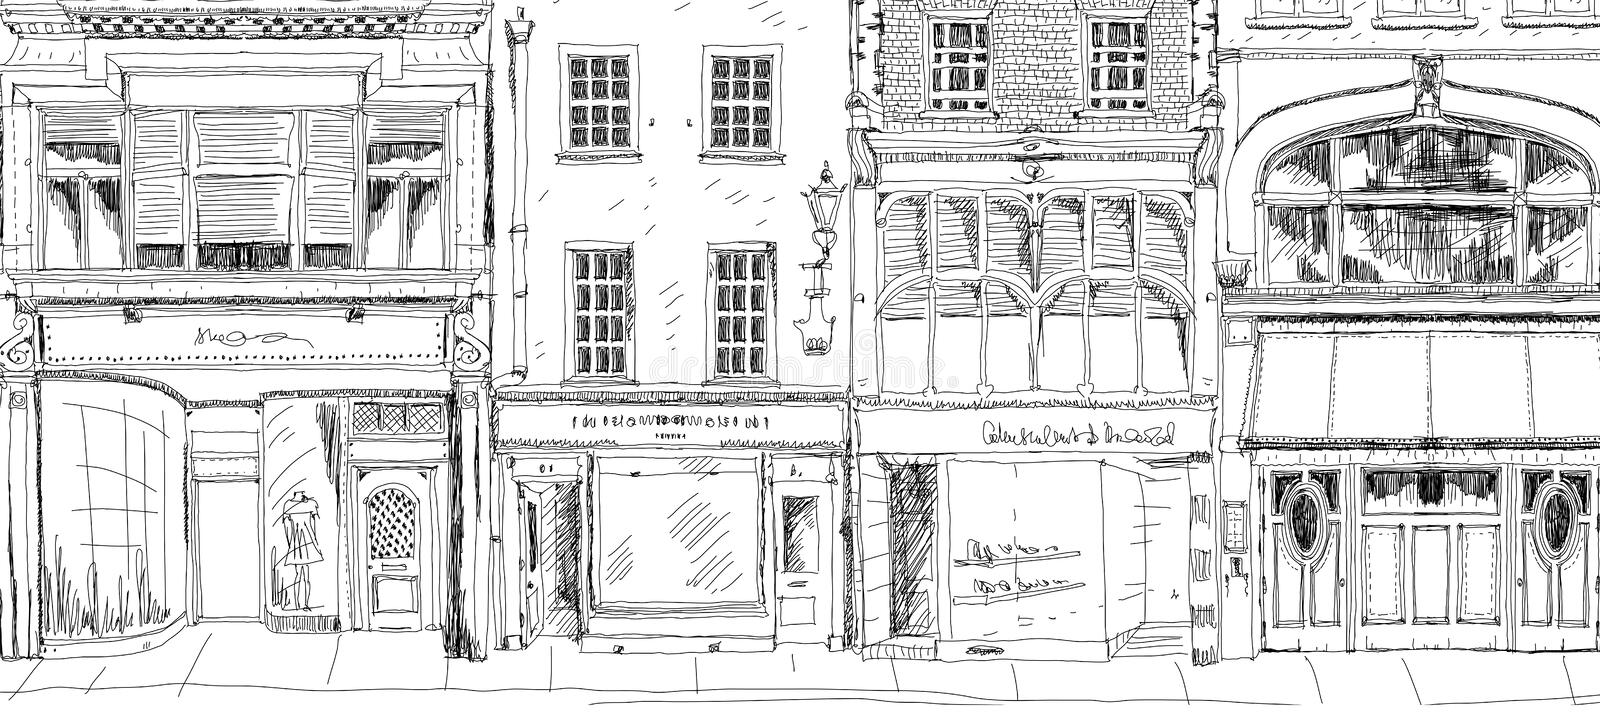 Old English town house with small shop or business on ground floor. Sketch collection vector illustration